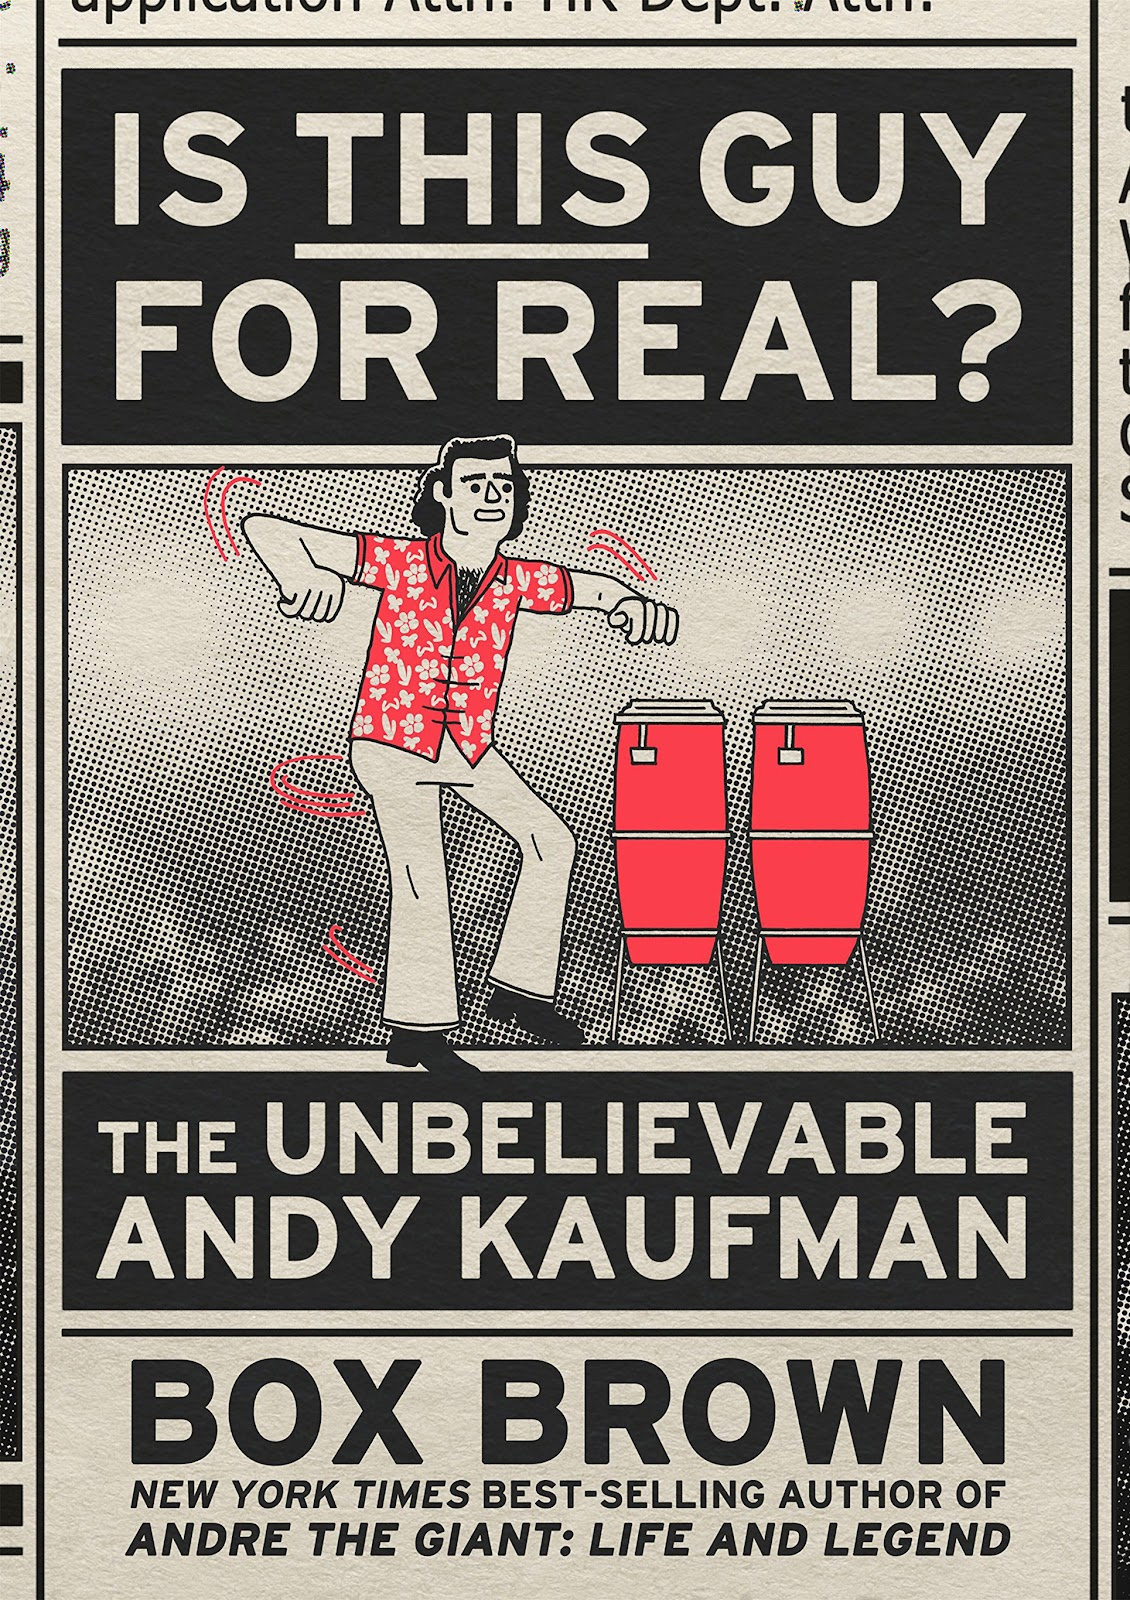 Read online Is This Guy For Real?: The Unbelievable Andy Kaufman comic -  Issue # TPB (Part 1) - 1